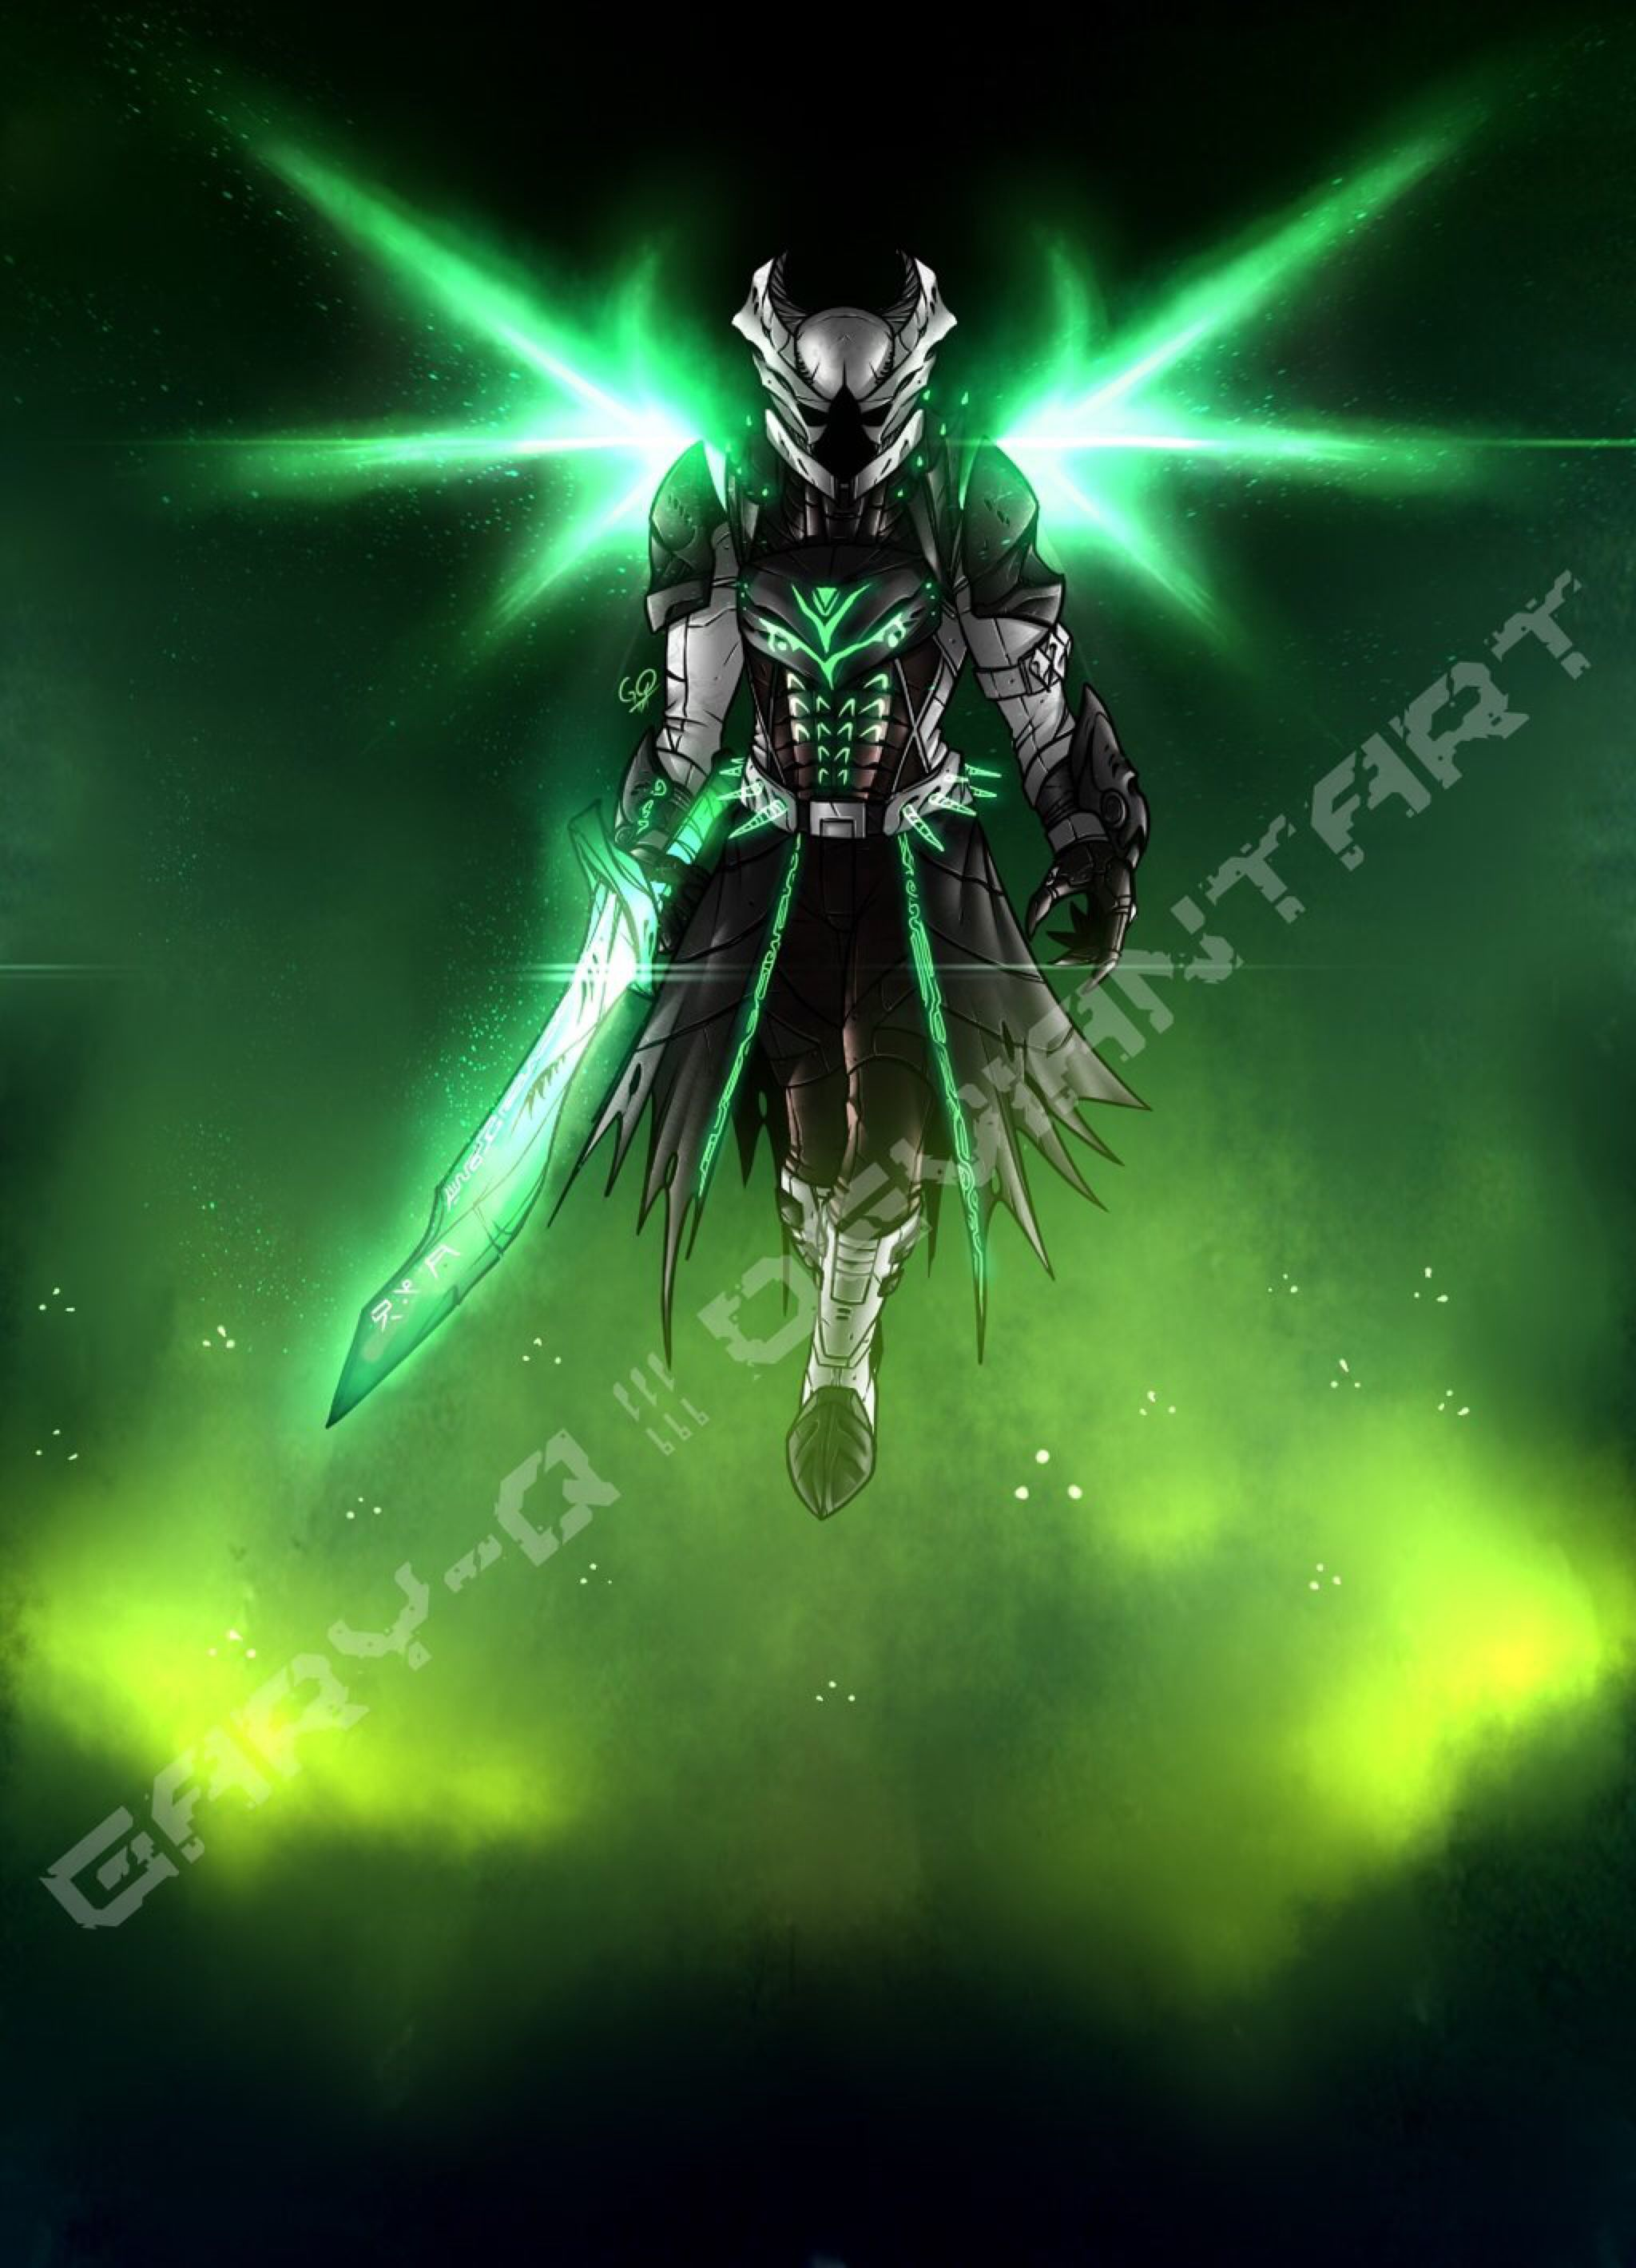 Hive Warlock (Commission) by Dominus-Gary on @DeviantArt